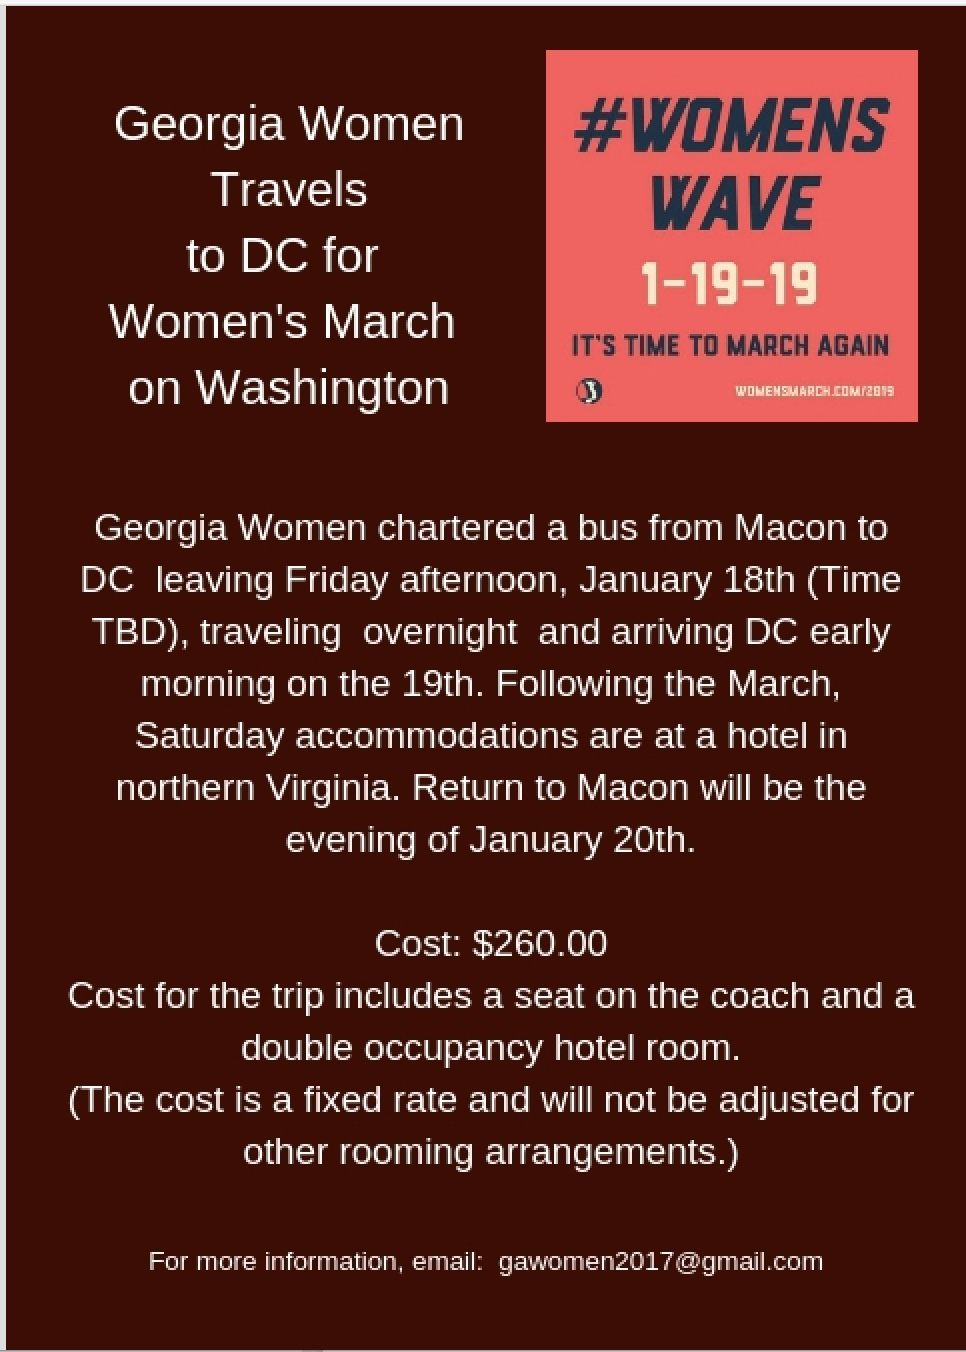 This event is sponsored by the Georgia Women organization, in which many in the Centenary Community participate.